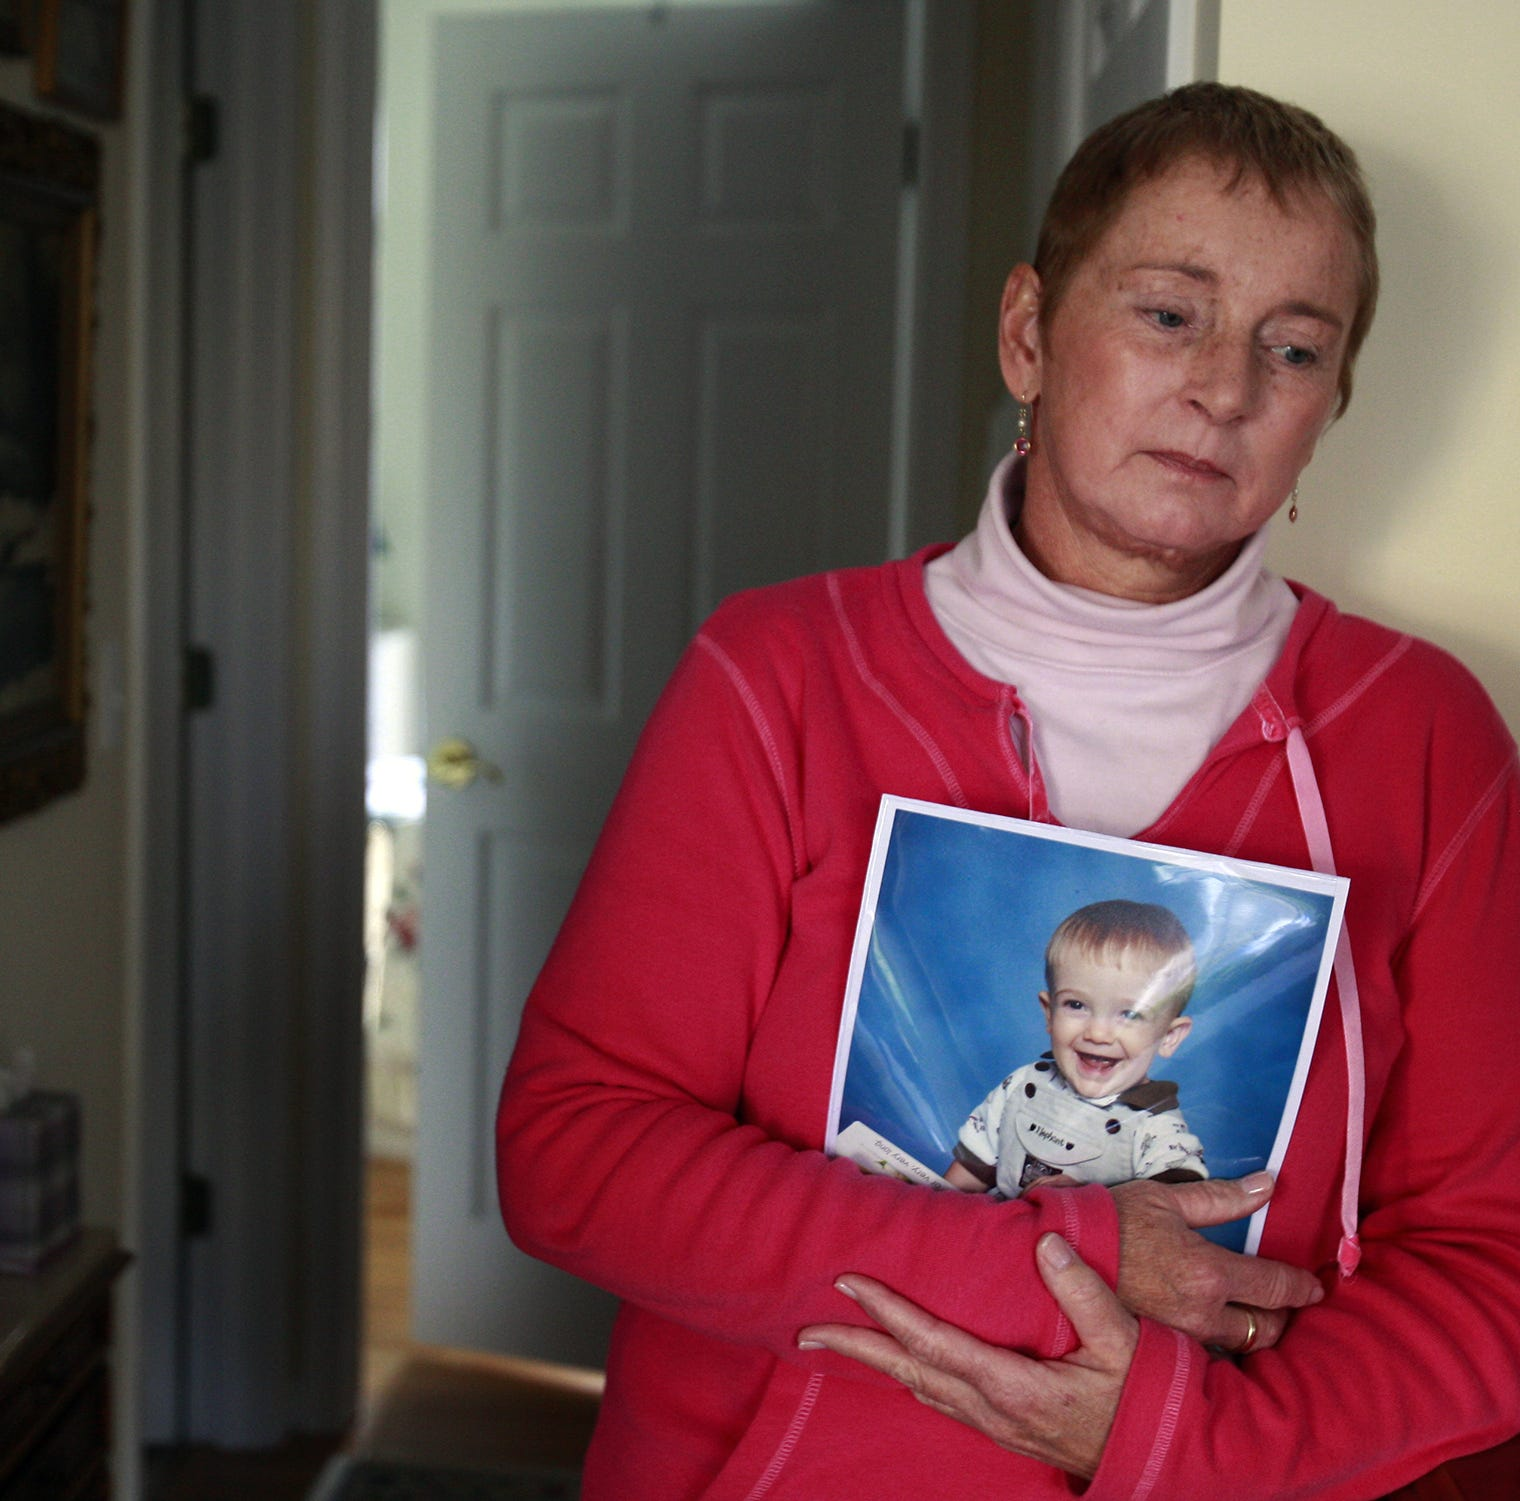 Grandma of missing boy, Timmothy Pitzen, has her fingers crossed he's been found